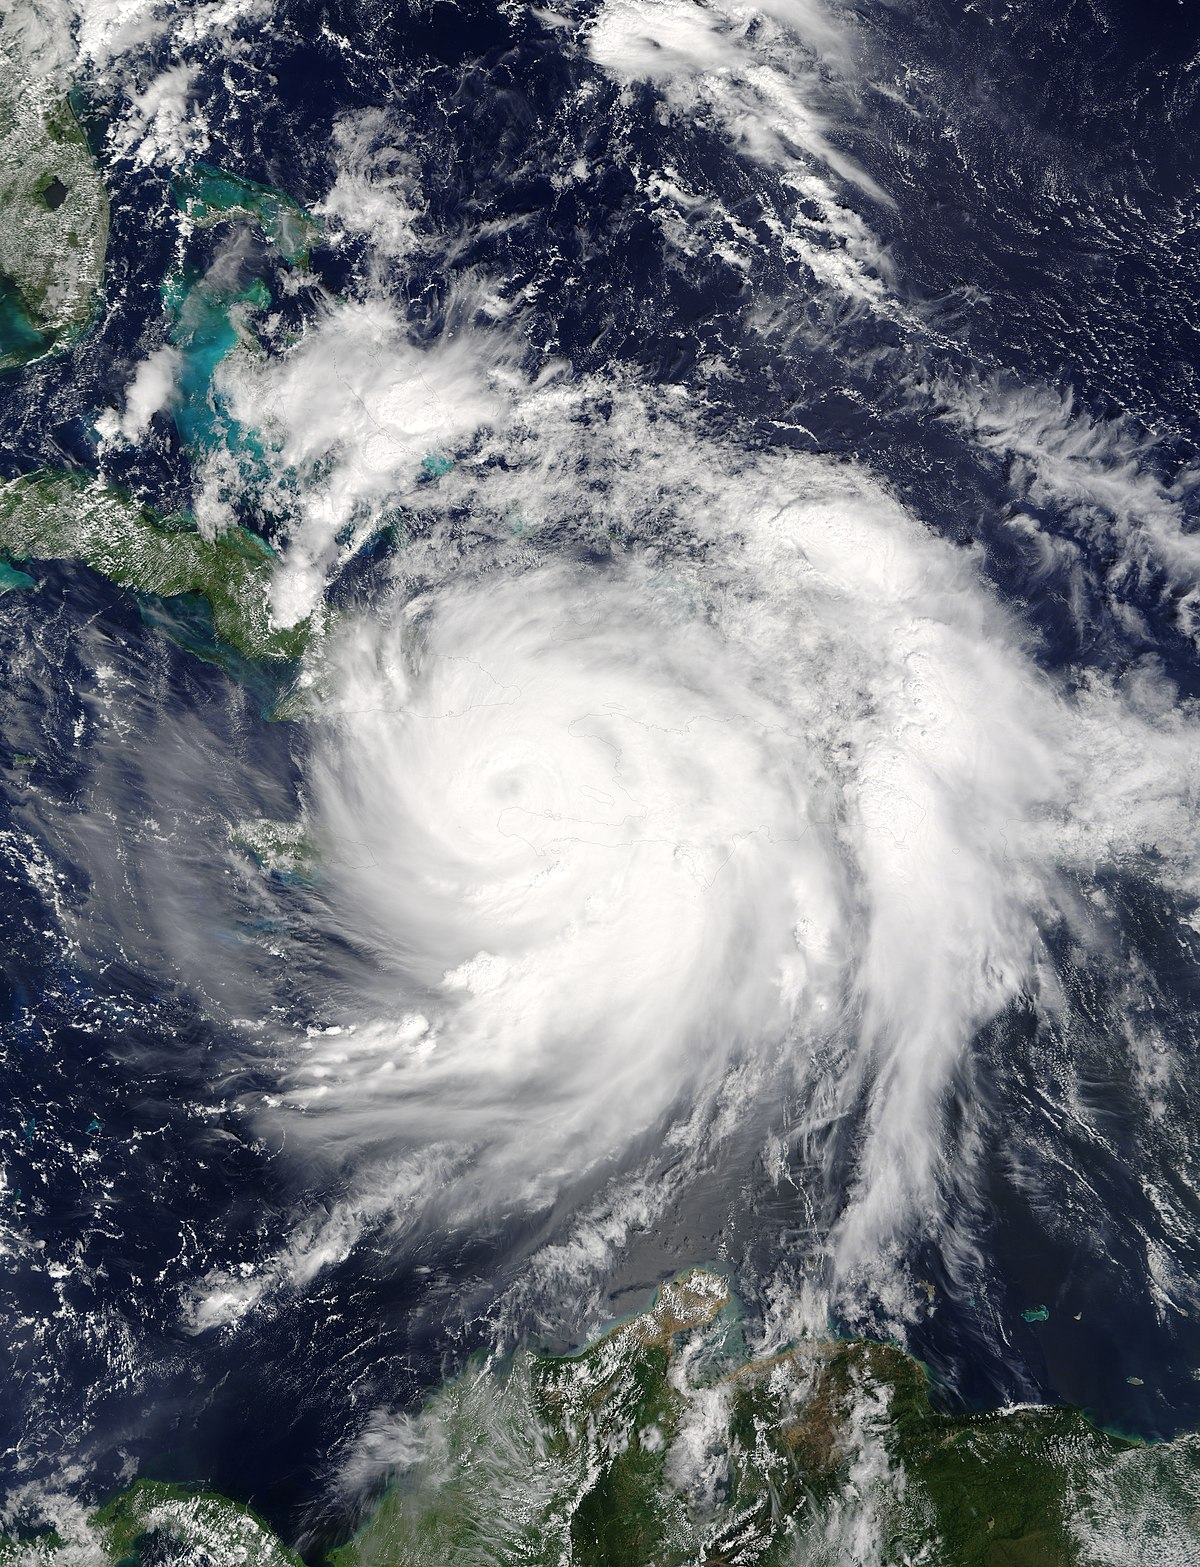 hurricane ivan and its effects on A tropical storm warning was in effect for martinique, st lucia and barbados,  where the island's 280 000 residents were preparing for the worst.